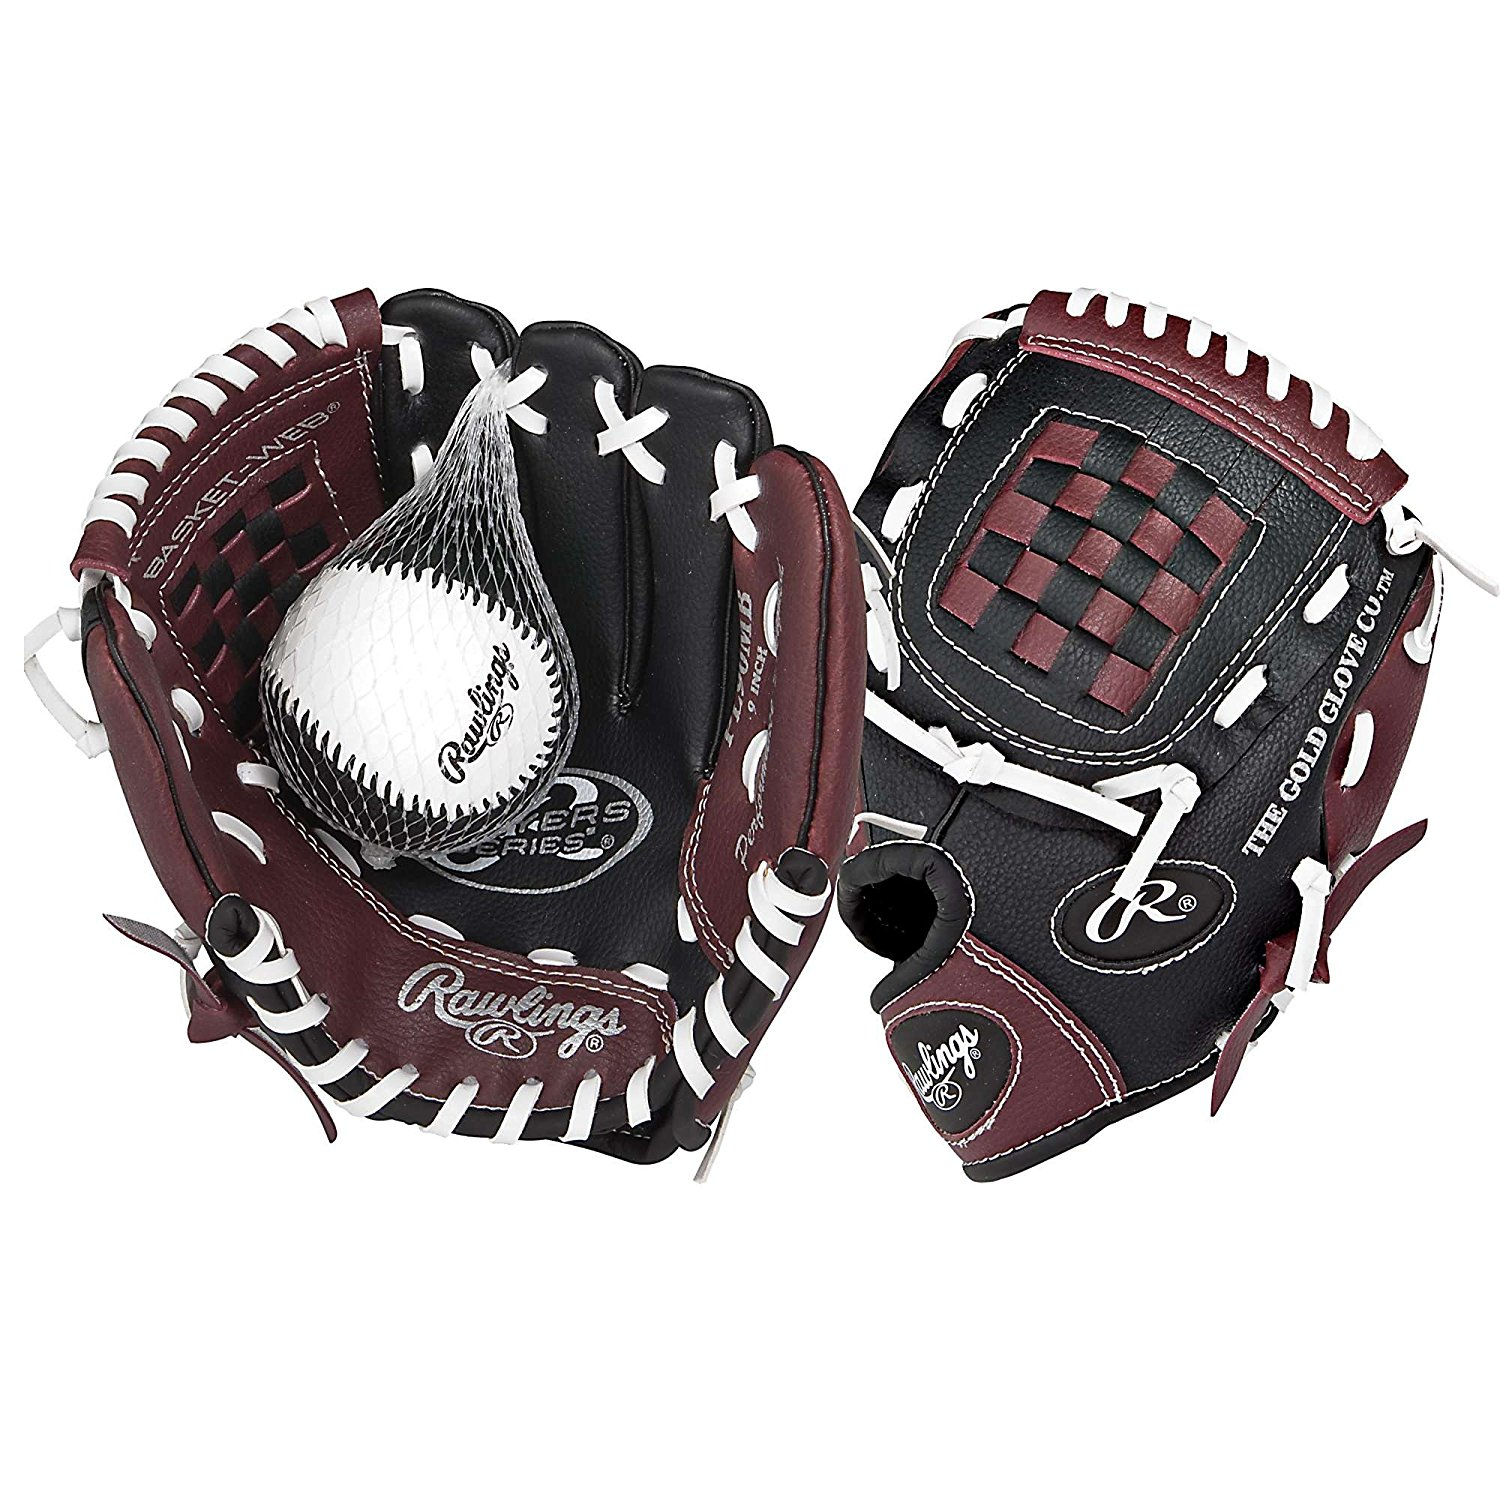 Rawlings Players Youth Baseball Glove